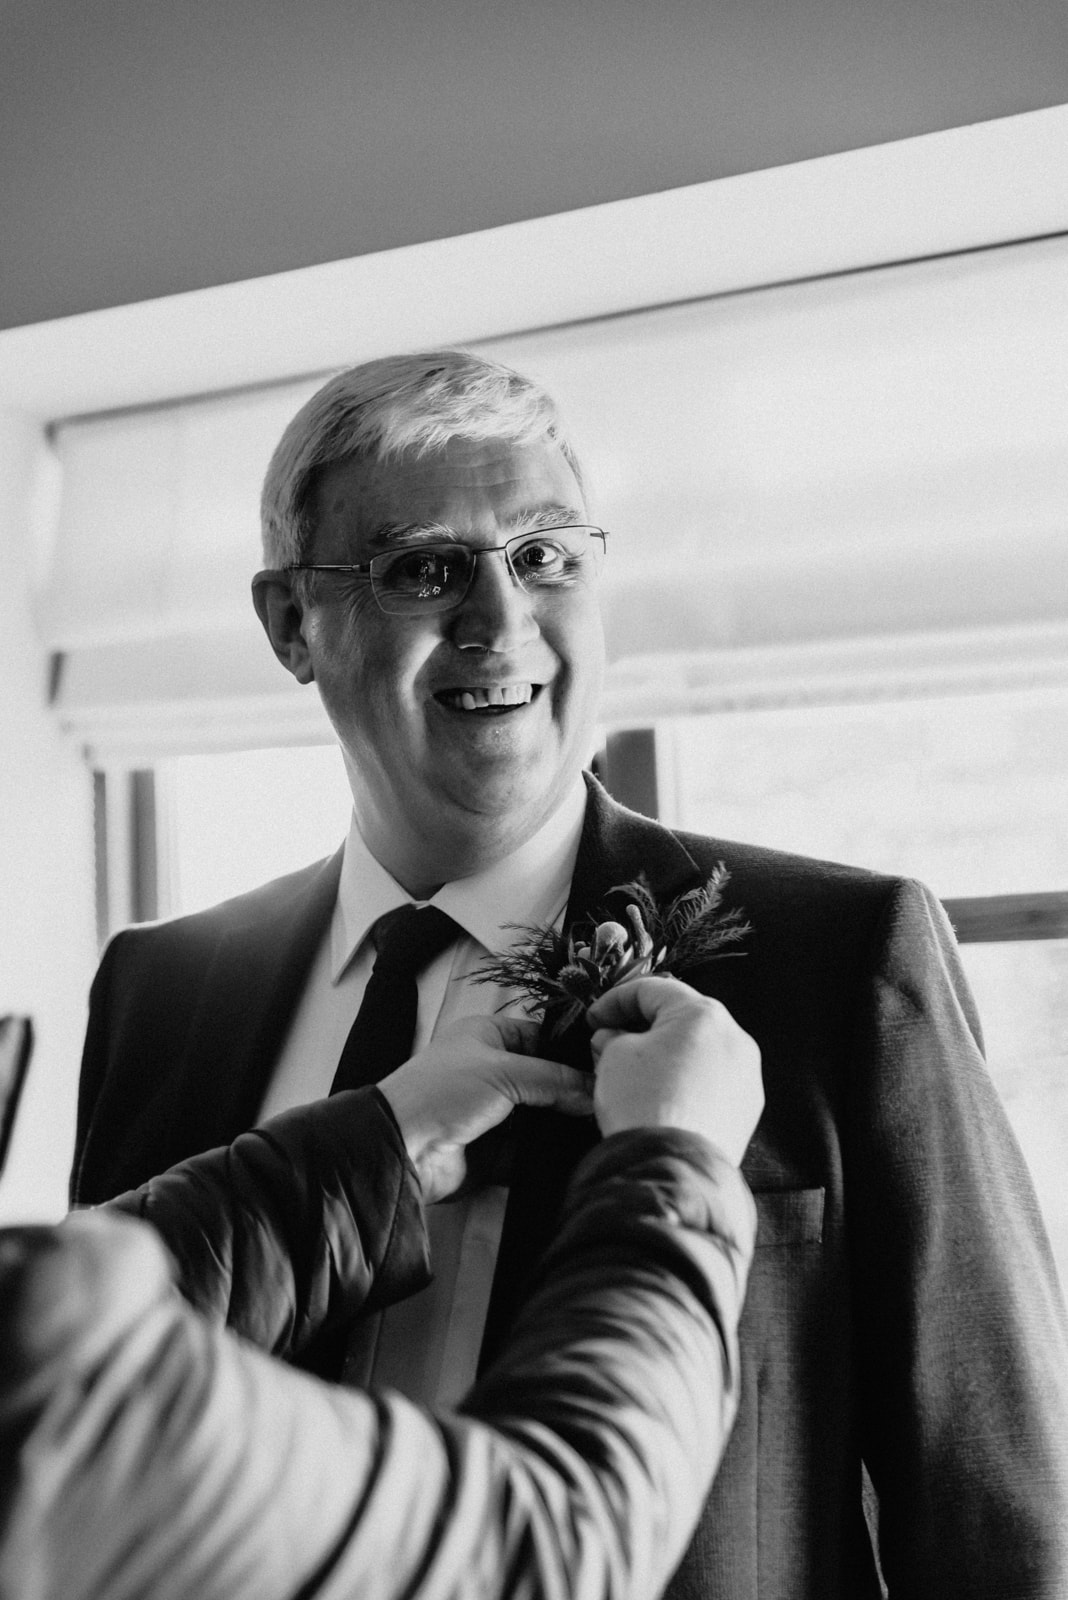 Groom's dad getting ready dinosaur a themed menus Roshni photography The Milling Barn, Bluntswood Hall, Throcking wedding photographer